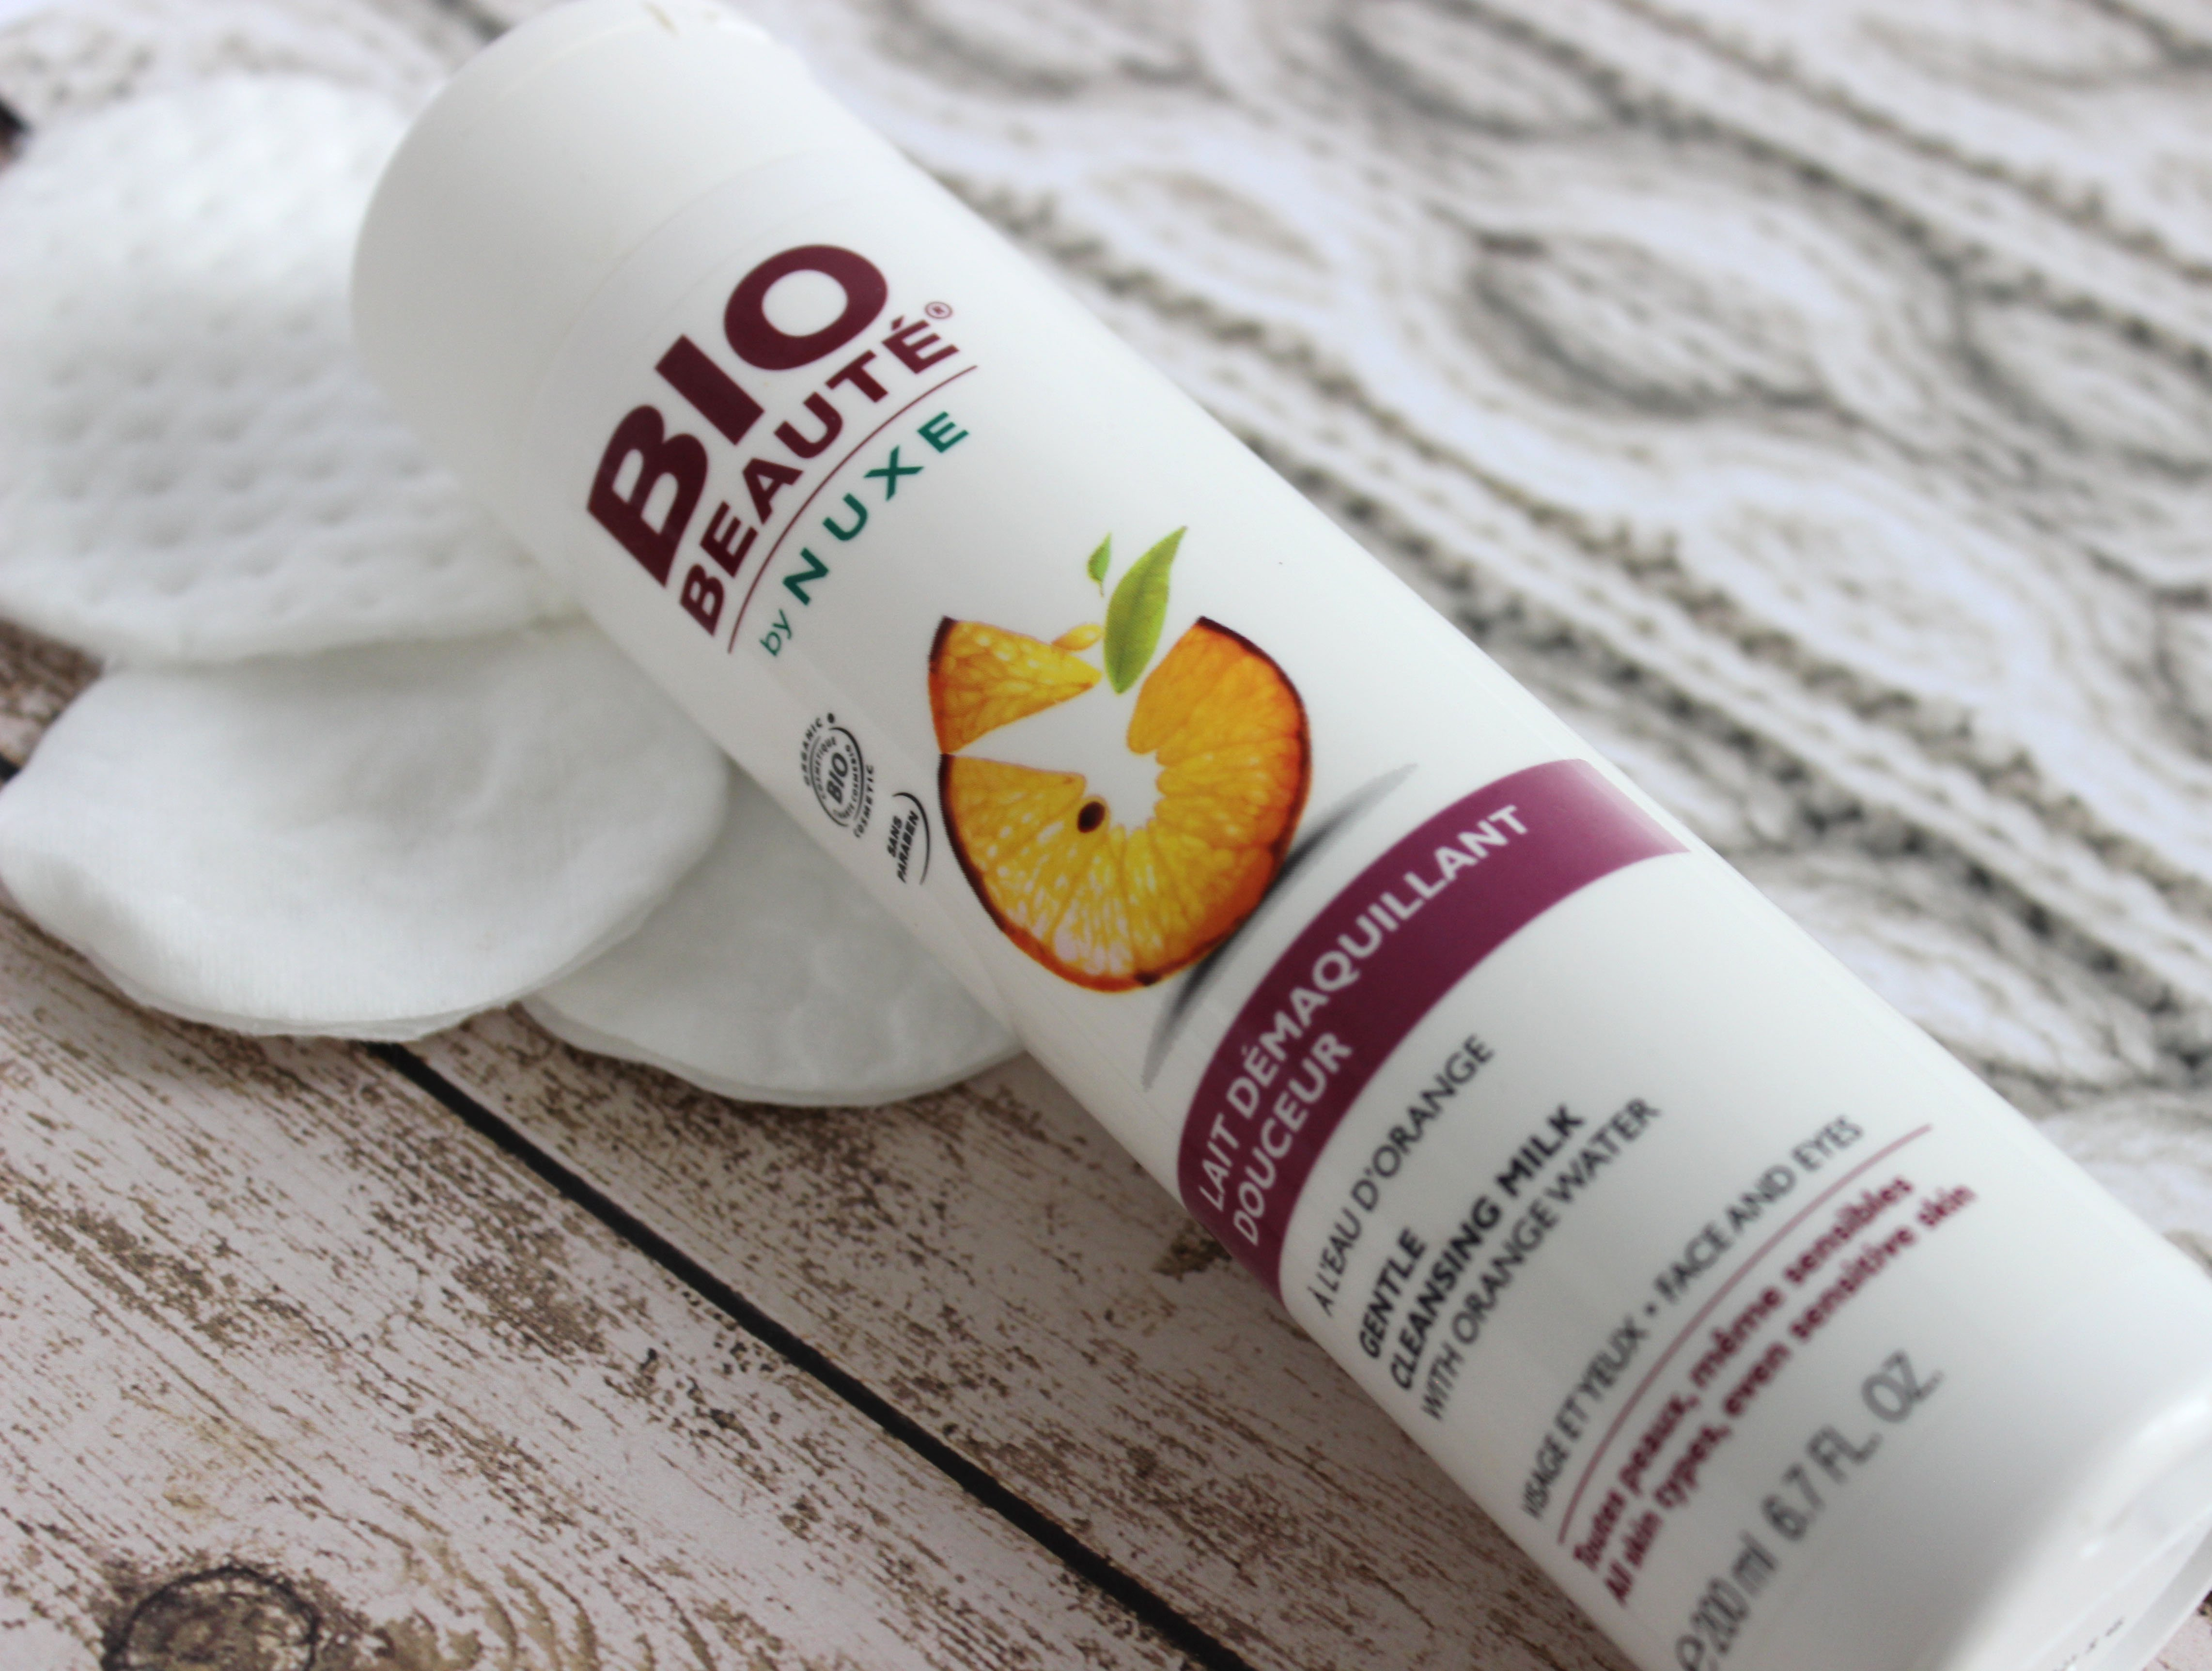 Bio Beaute by Nuxe Gentle Cleansing Milk | Review